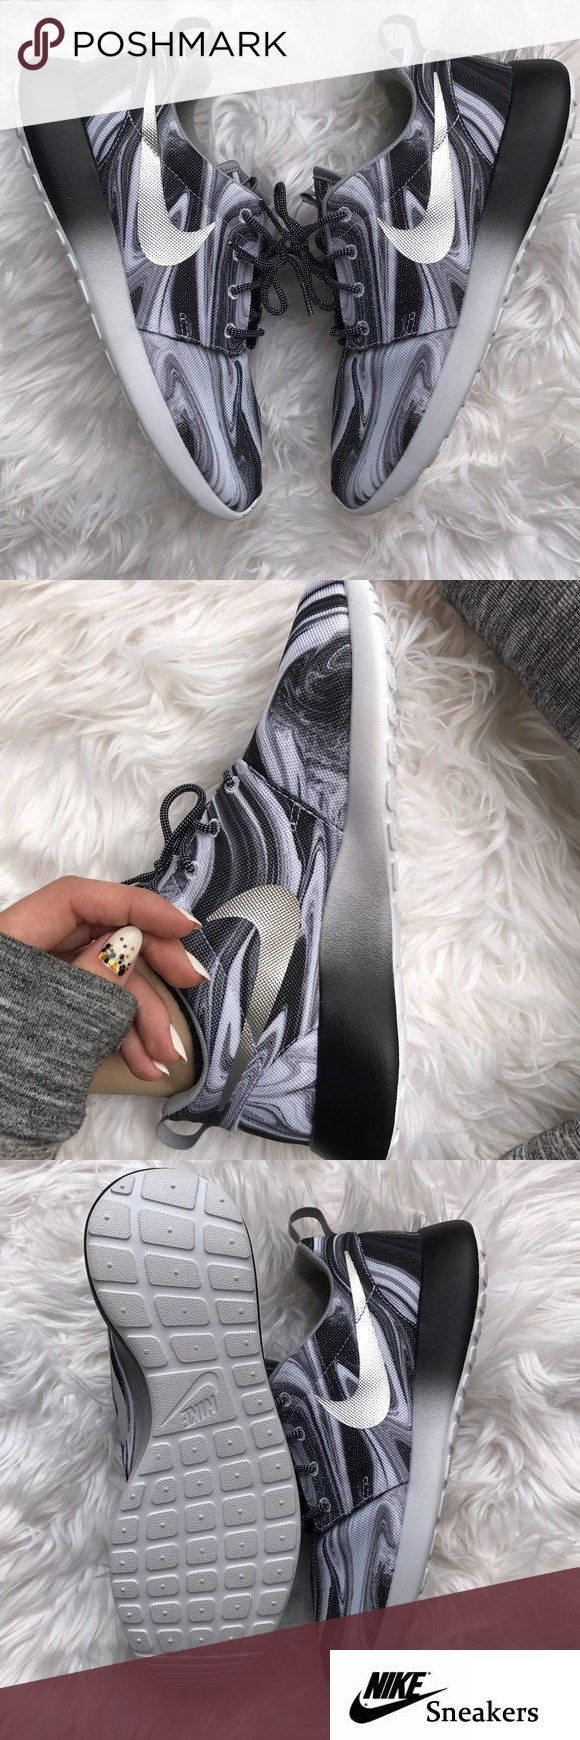 brand new 1ad98 07a94 NWT Nike id roshe marble ombré Brand new no box!no trades!price is firm!!custom  made silver swoosh ombré Nike roshe size 7 mens ,womens 8.5 Gear up for the  ...